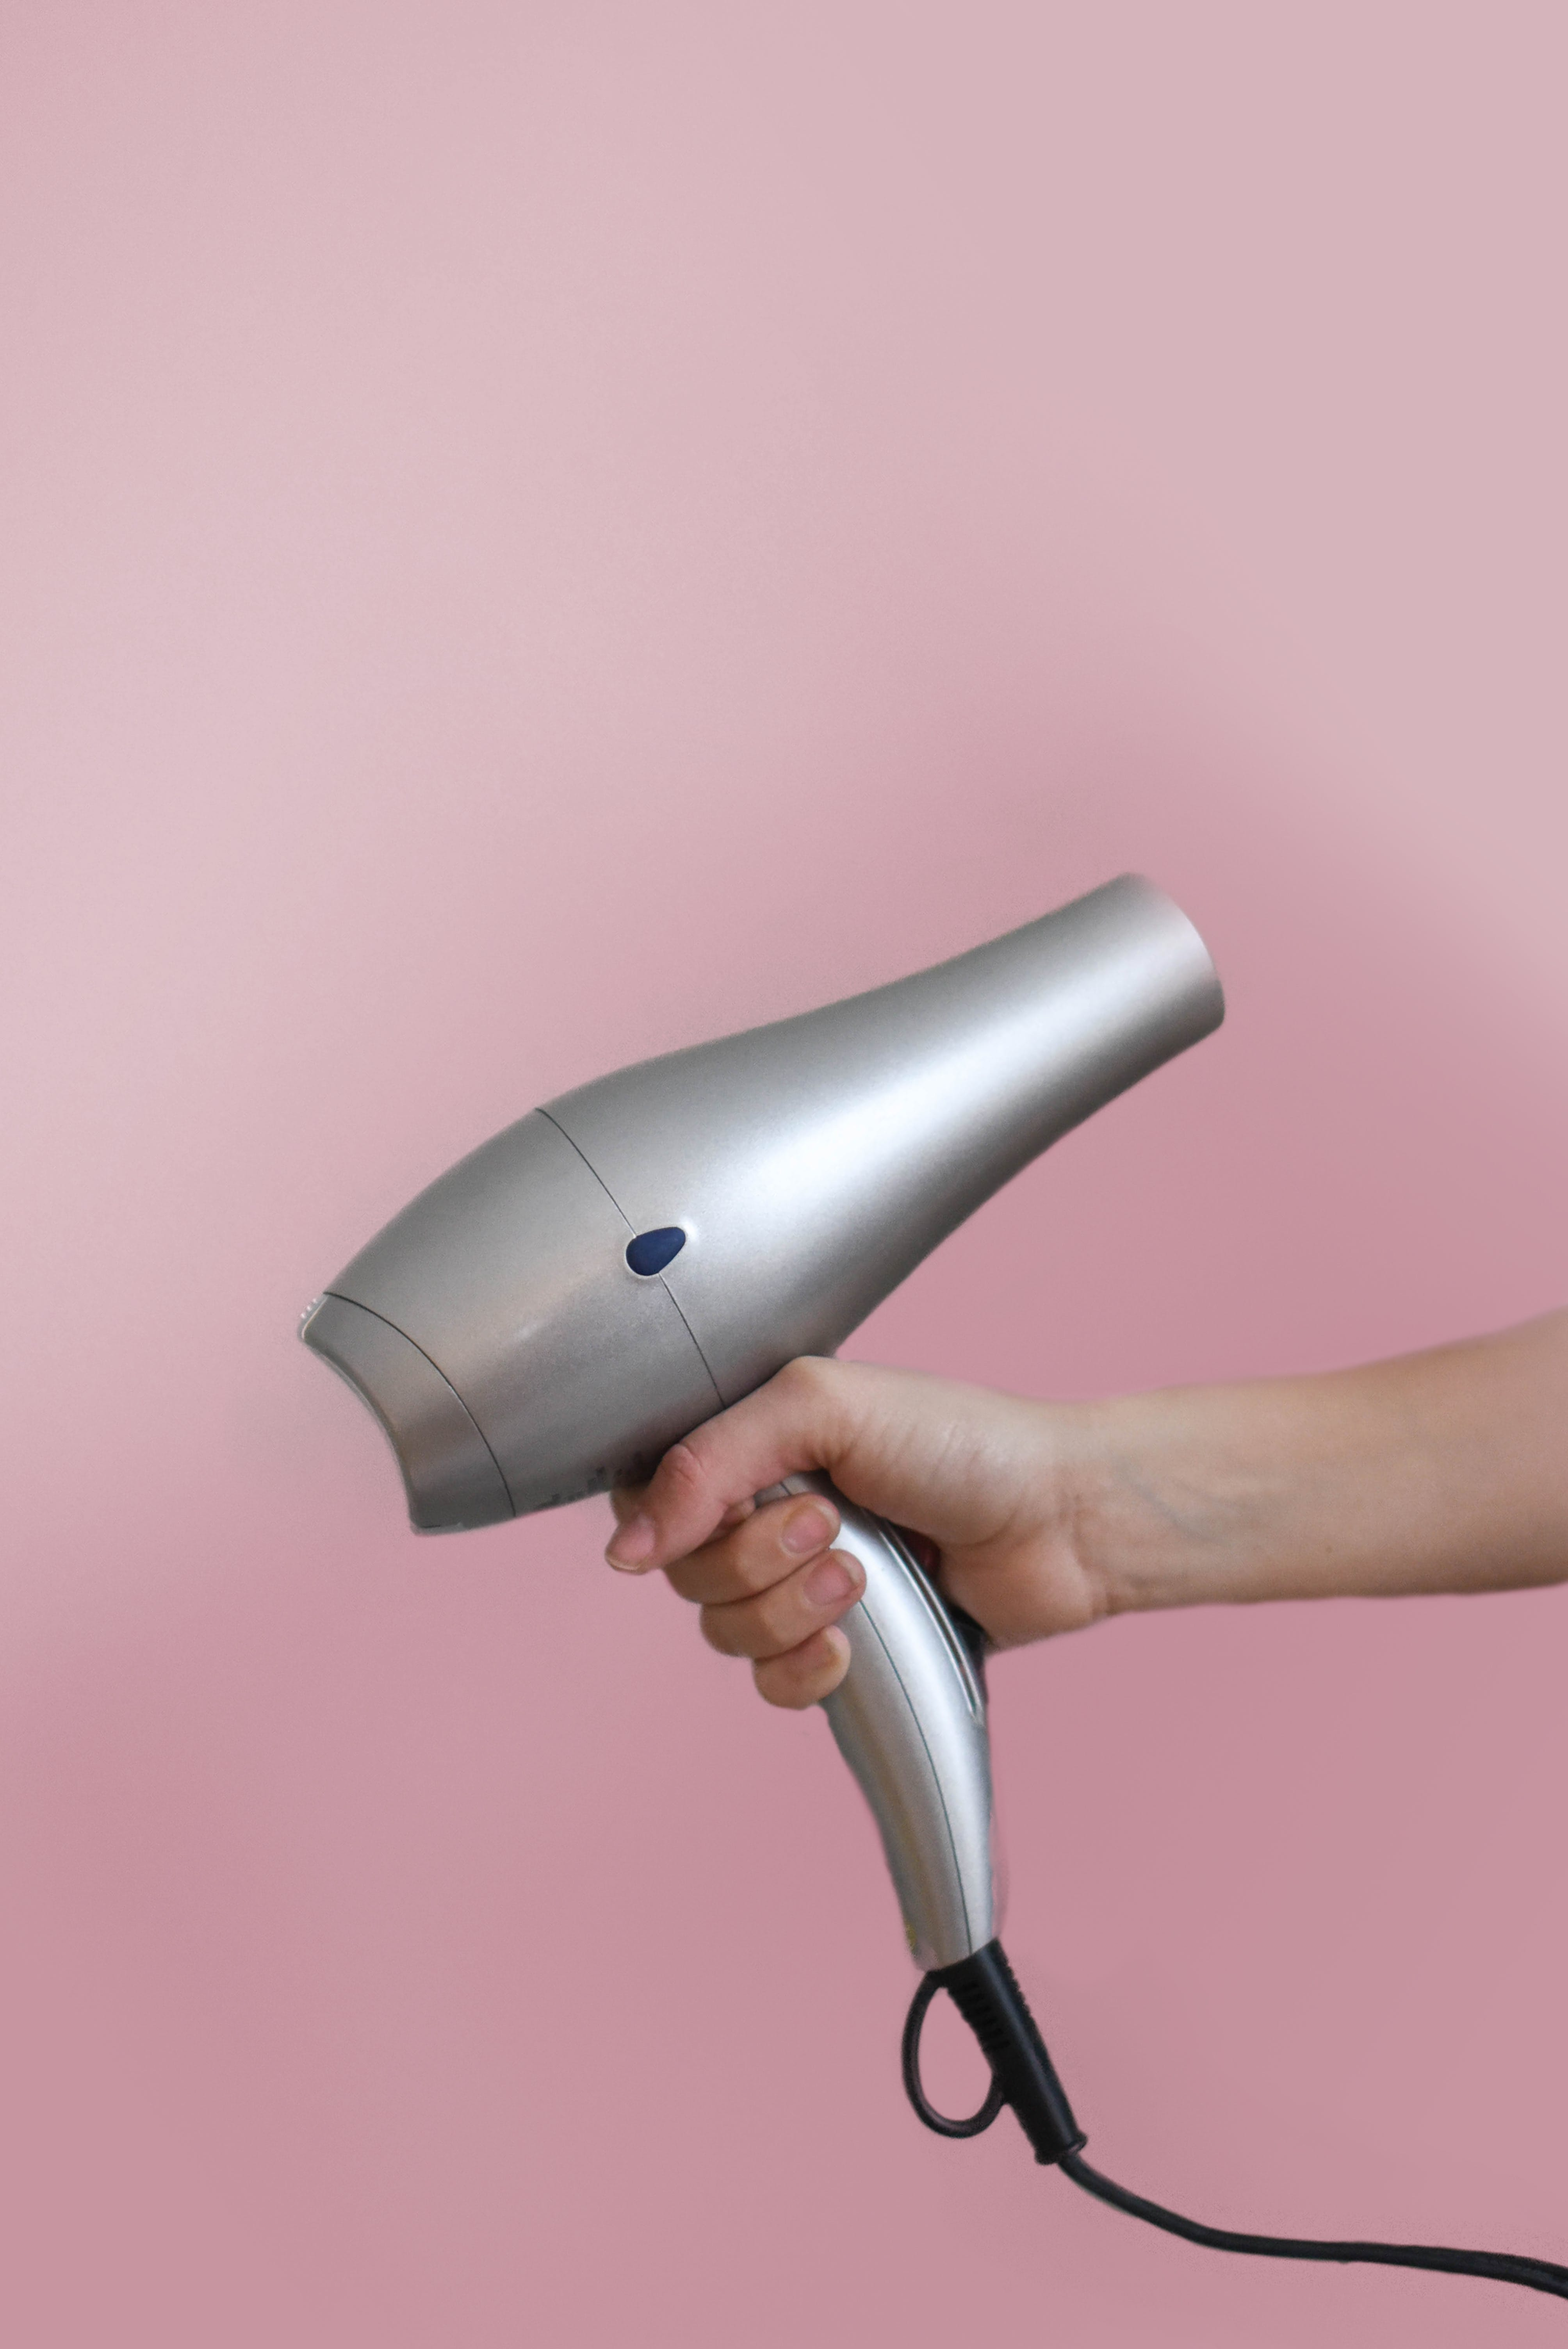 Person Holding Grey Hair Dryer